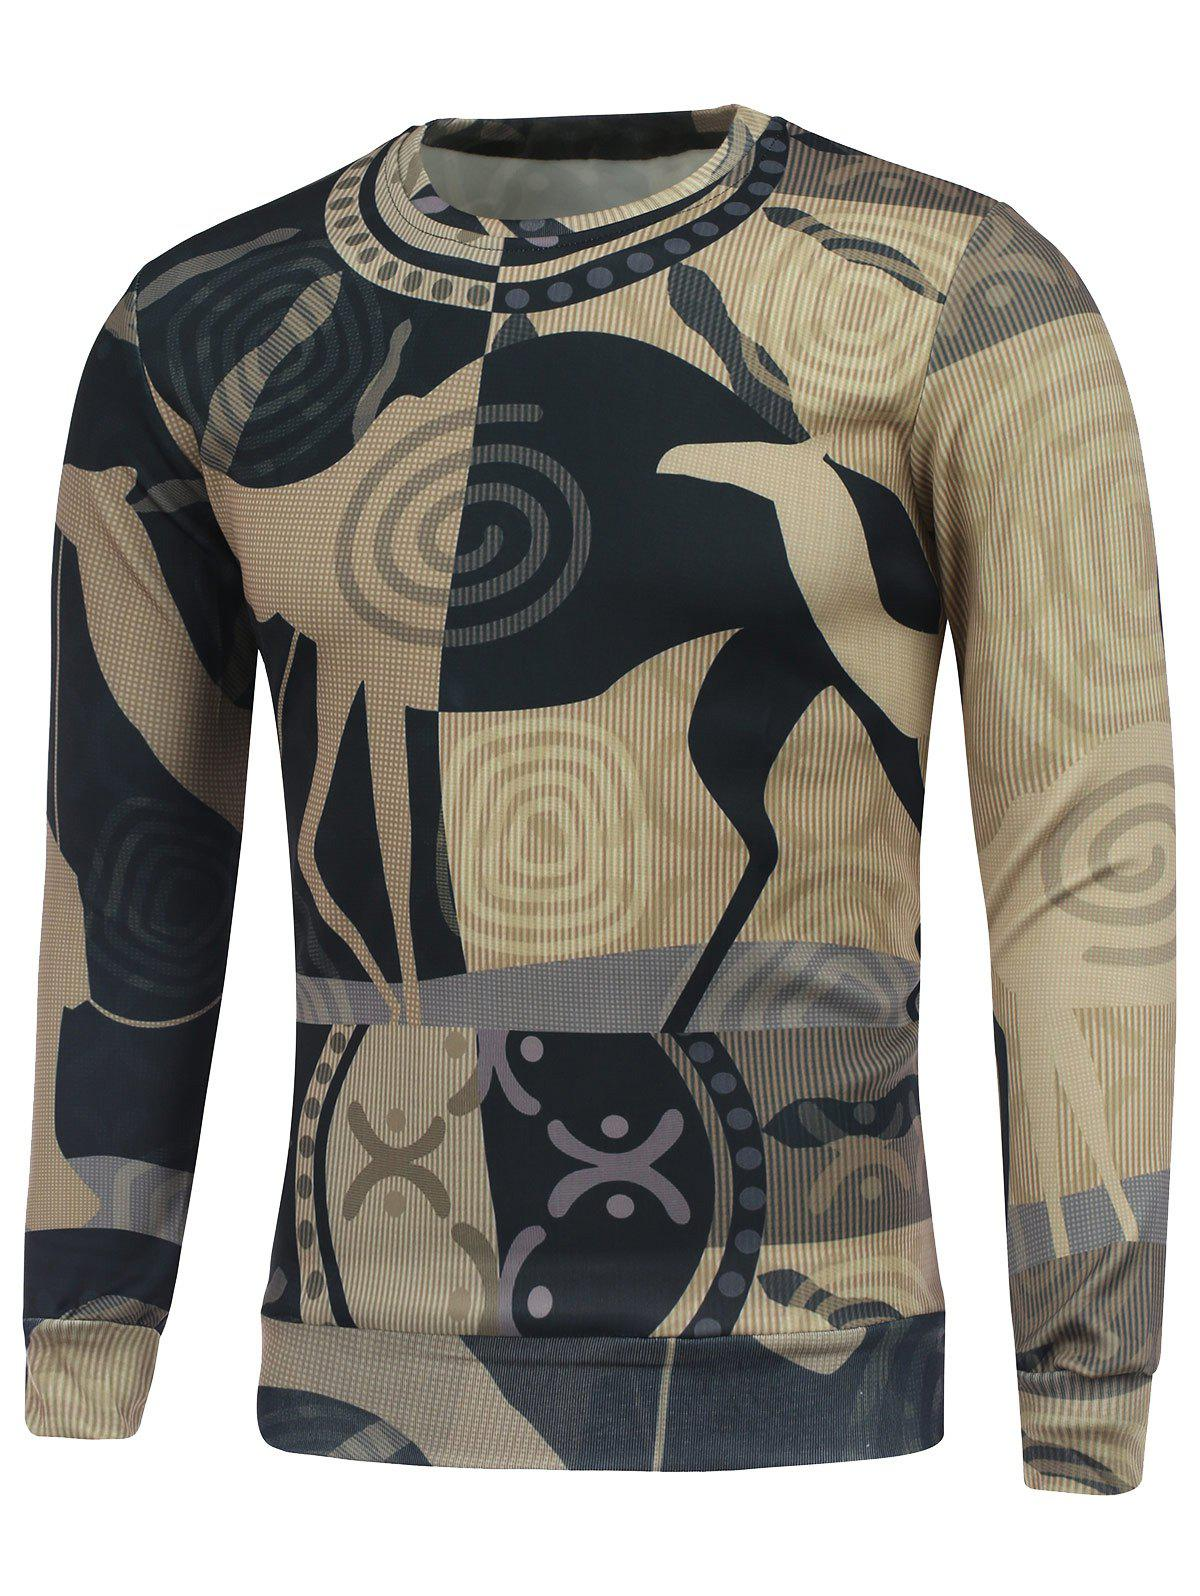 Buy Abstract Graphic Printing Crew Neck Sweatshirt COLORMIX